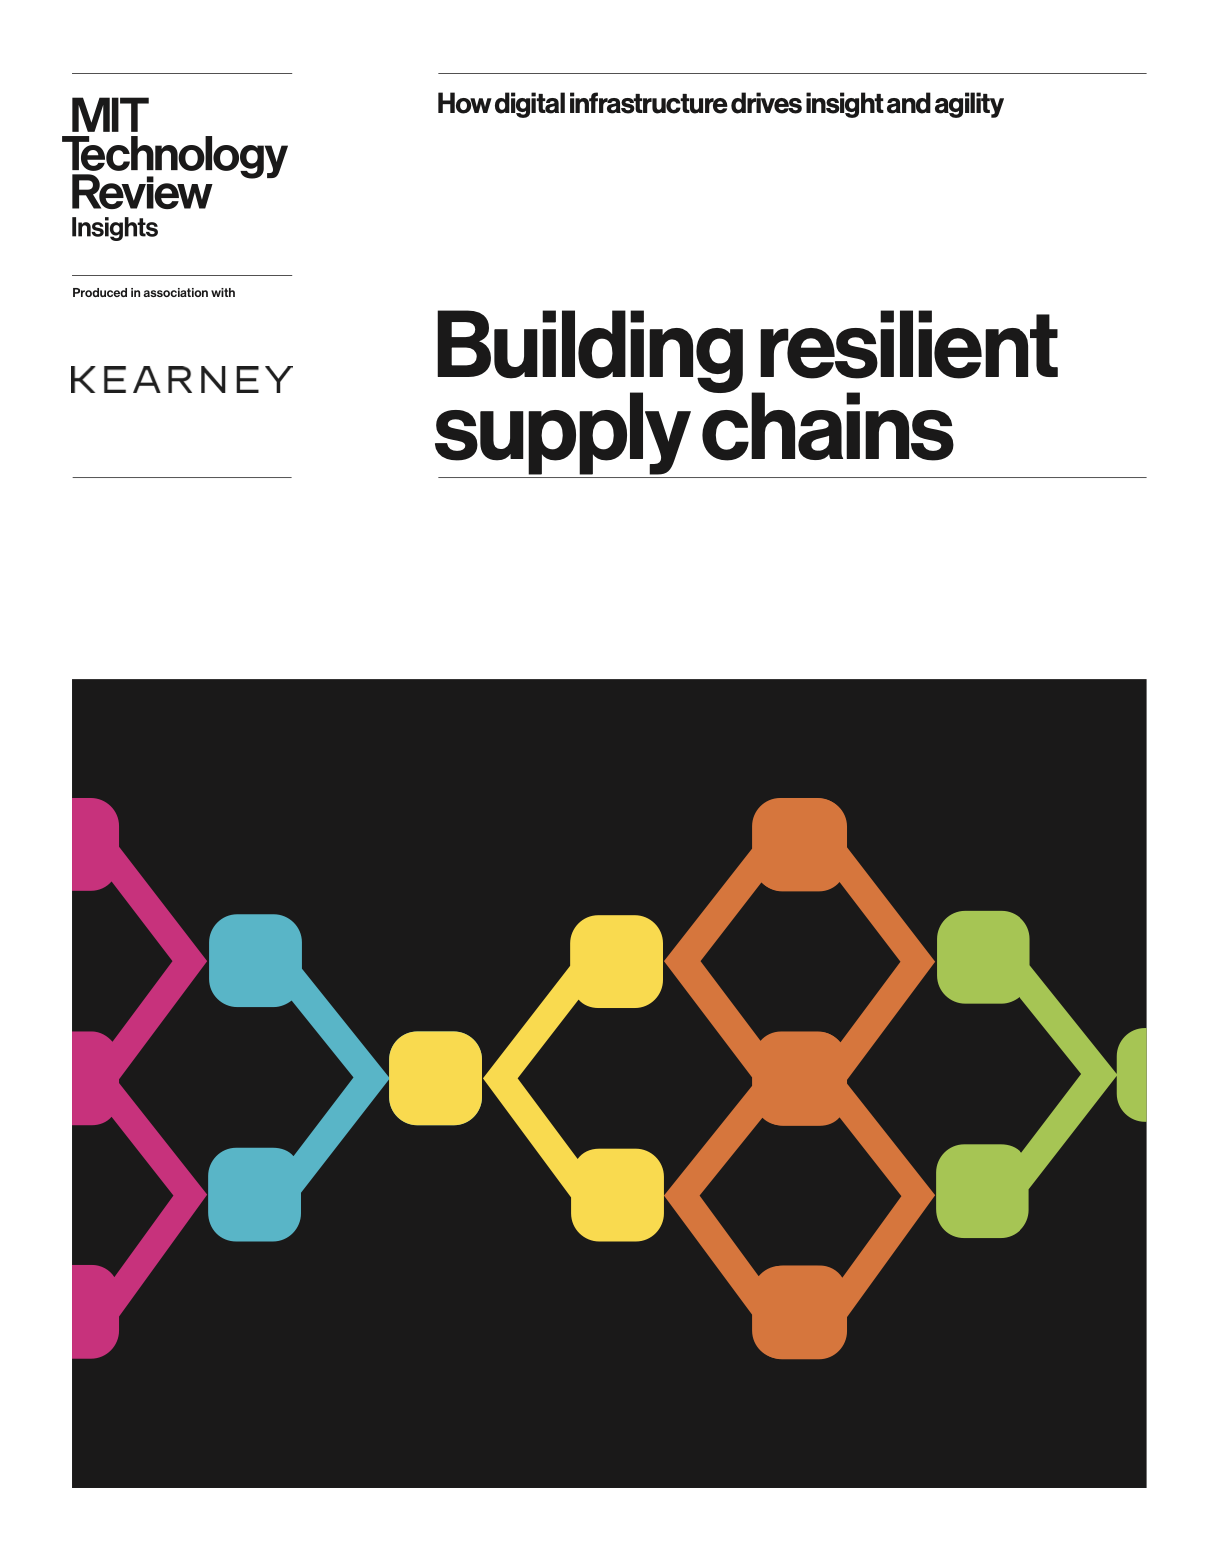 Building resilient supply chains